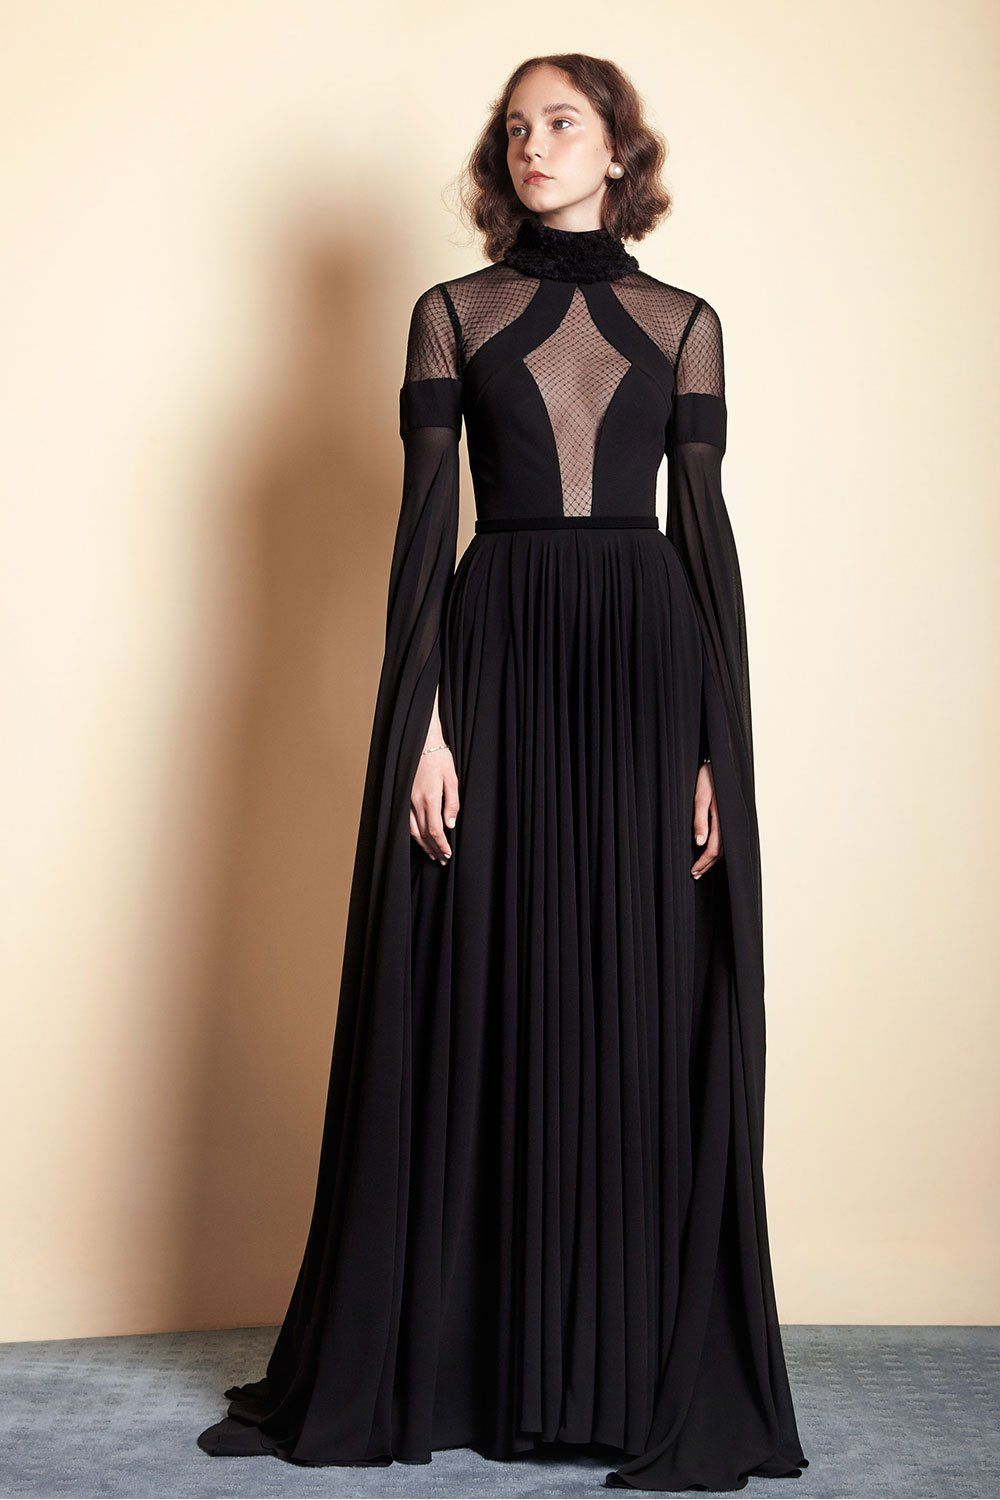 No Crying In The Club Monaco On Twitter Black Dresses Classy Classy Dress Event Dresses [ 1500 x 1000 Pixel ]